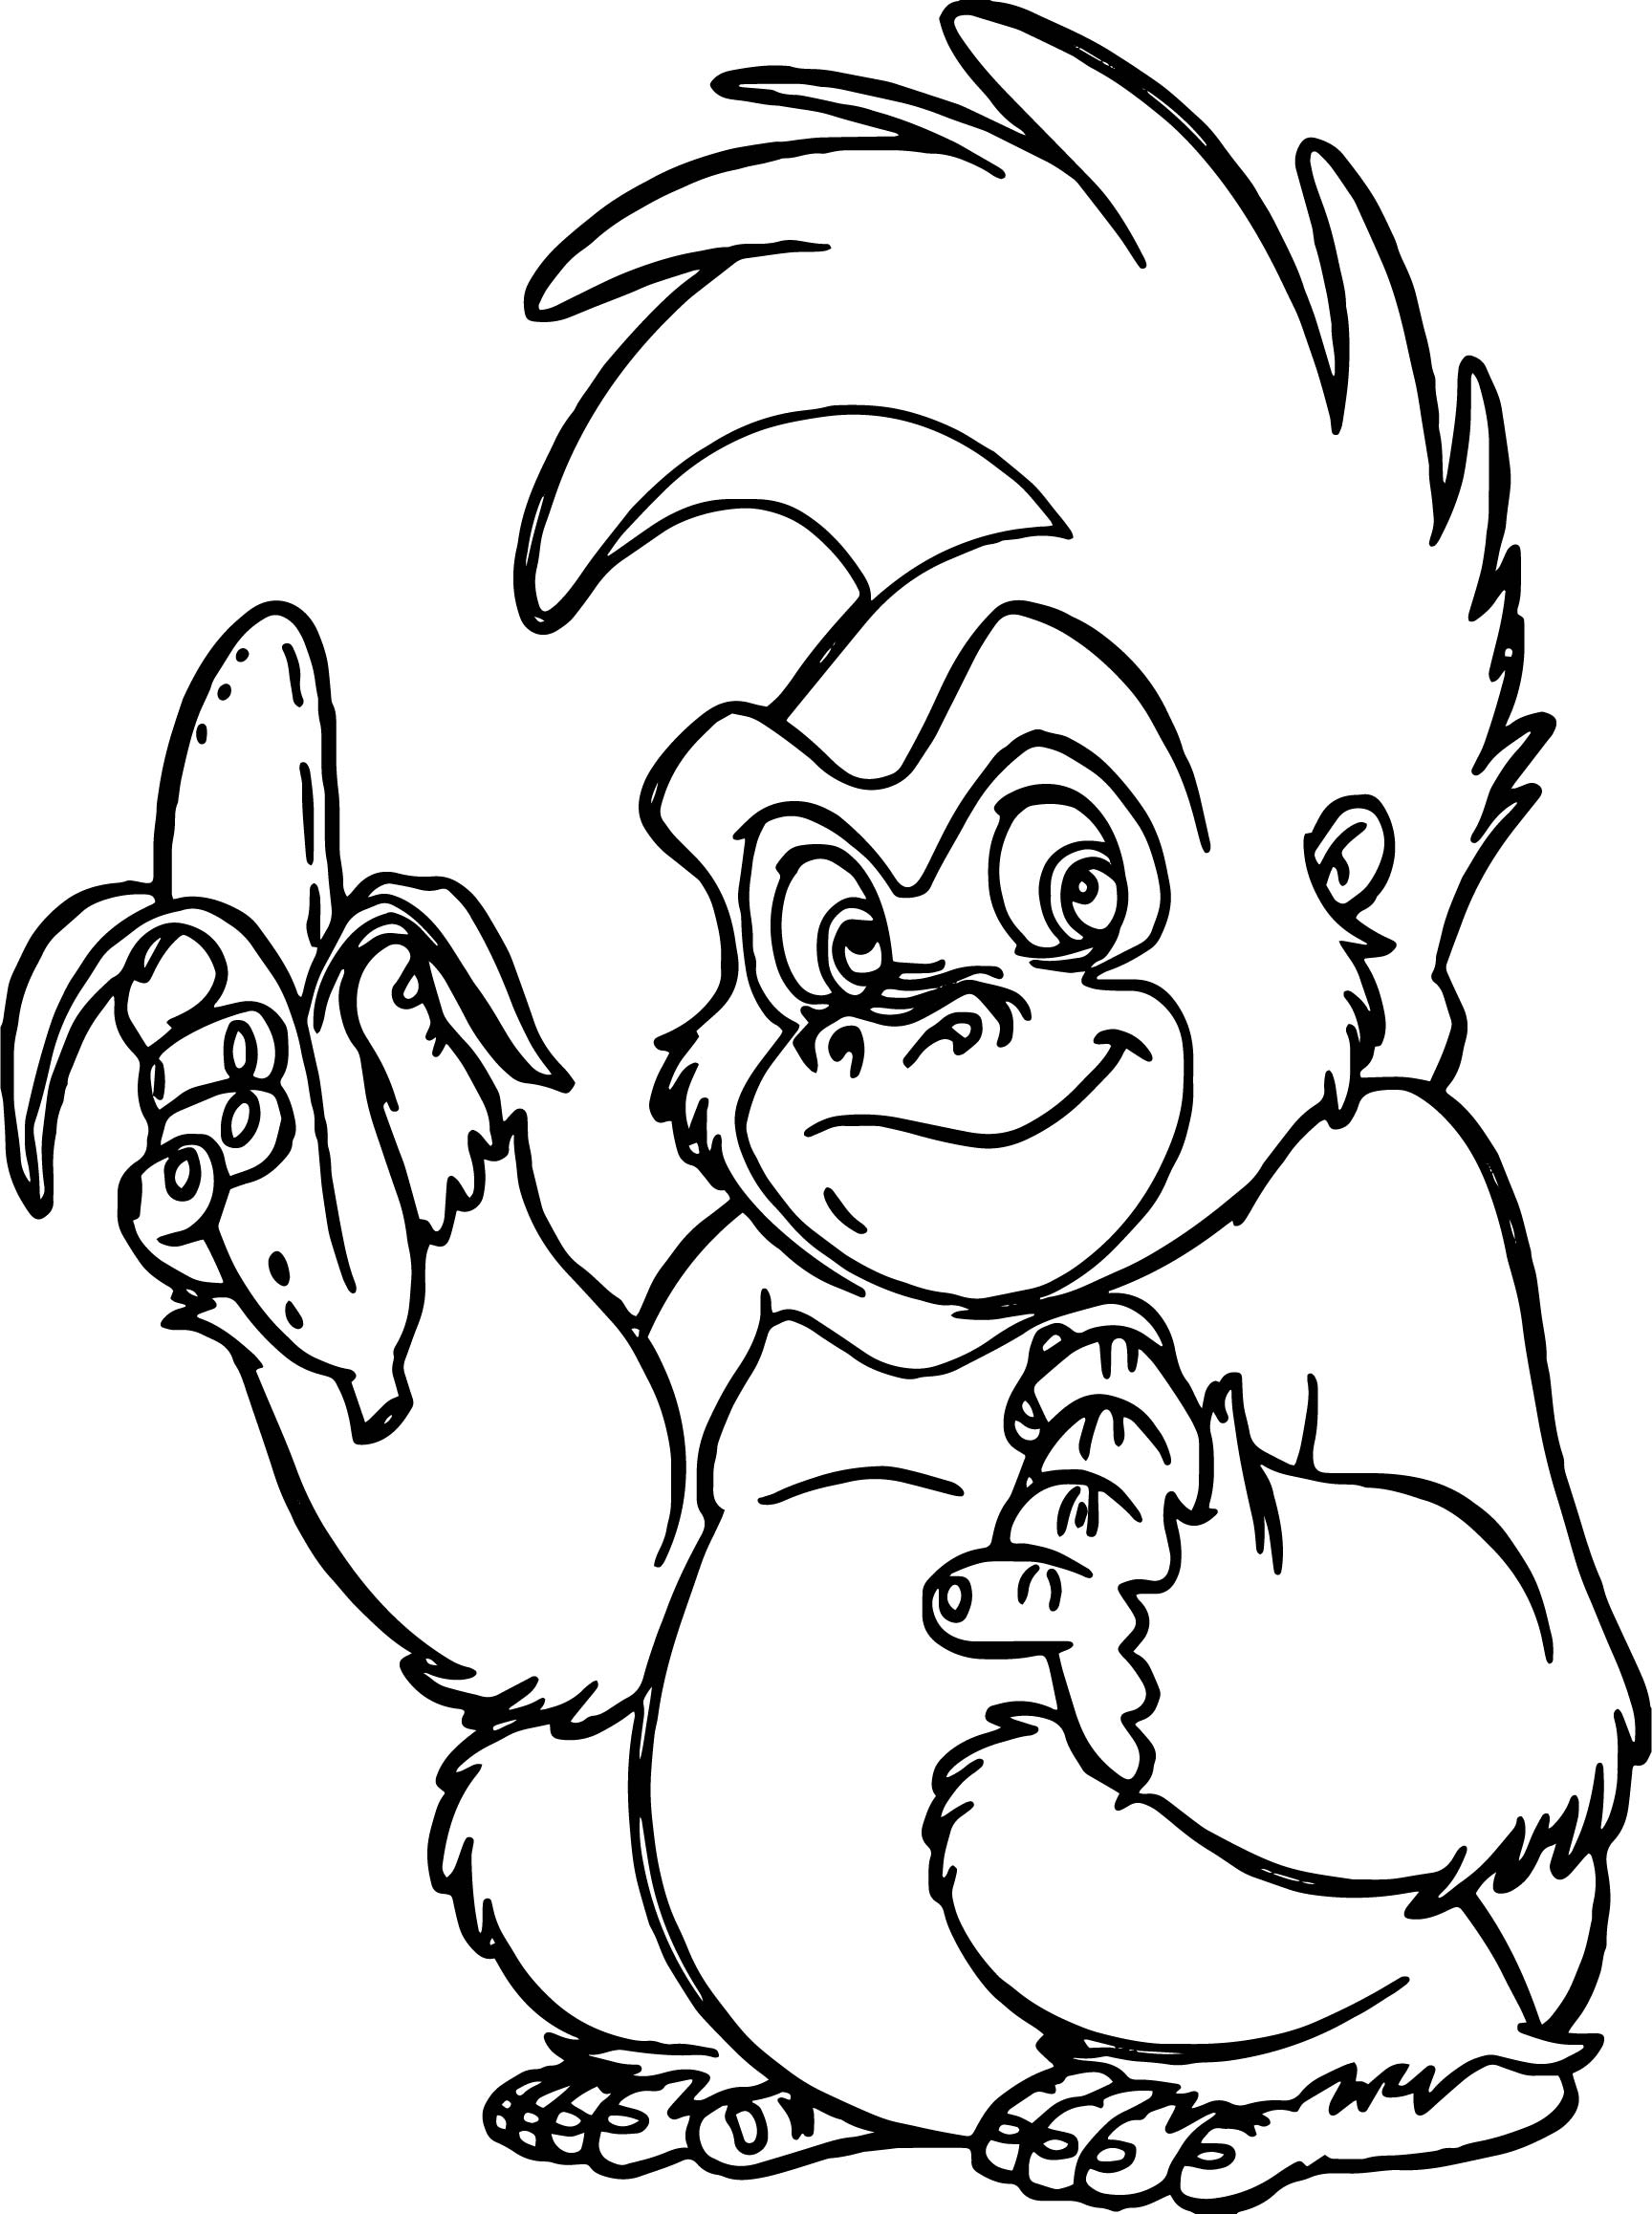 Banana Monkey Coloring Pages Free Printable. Banana. Best